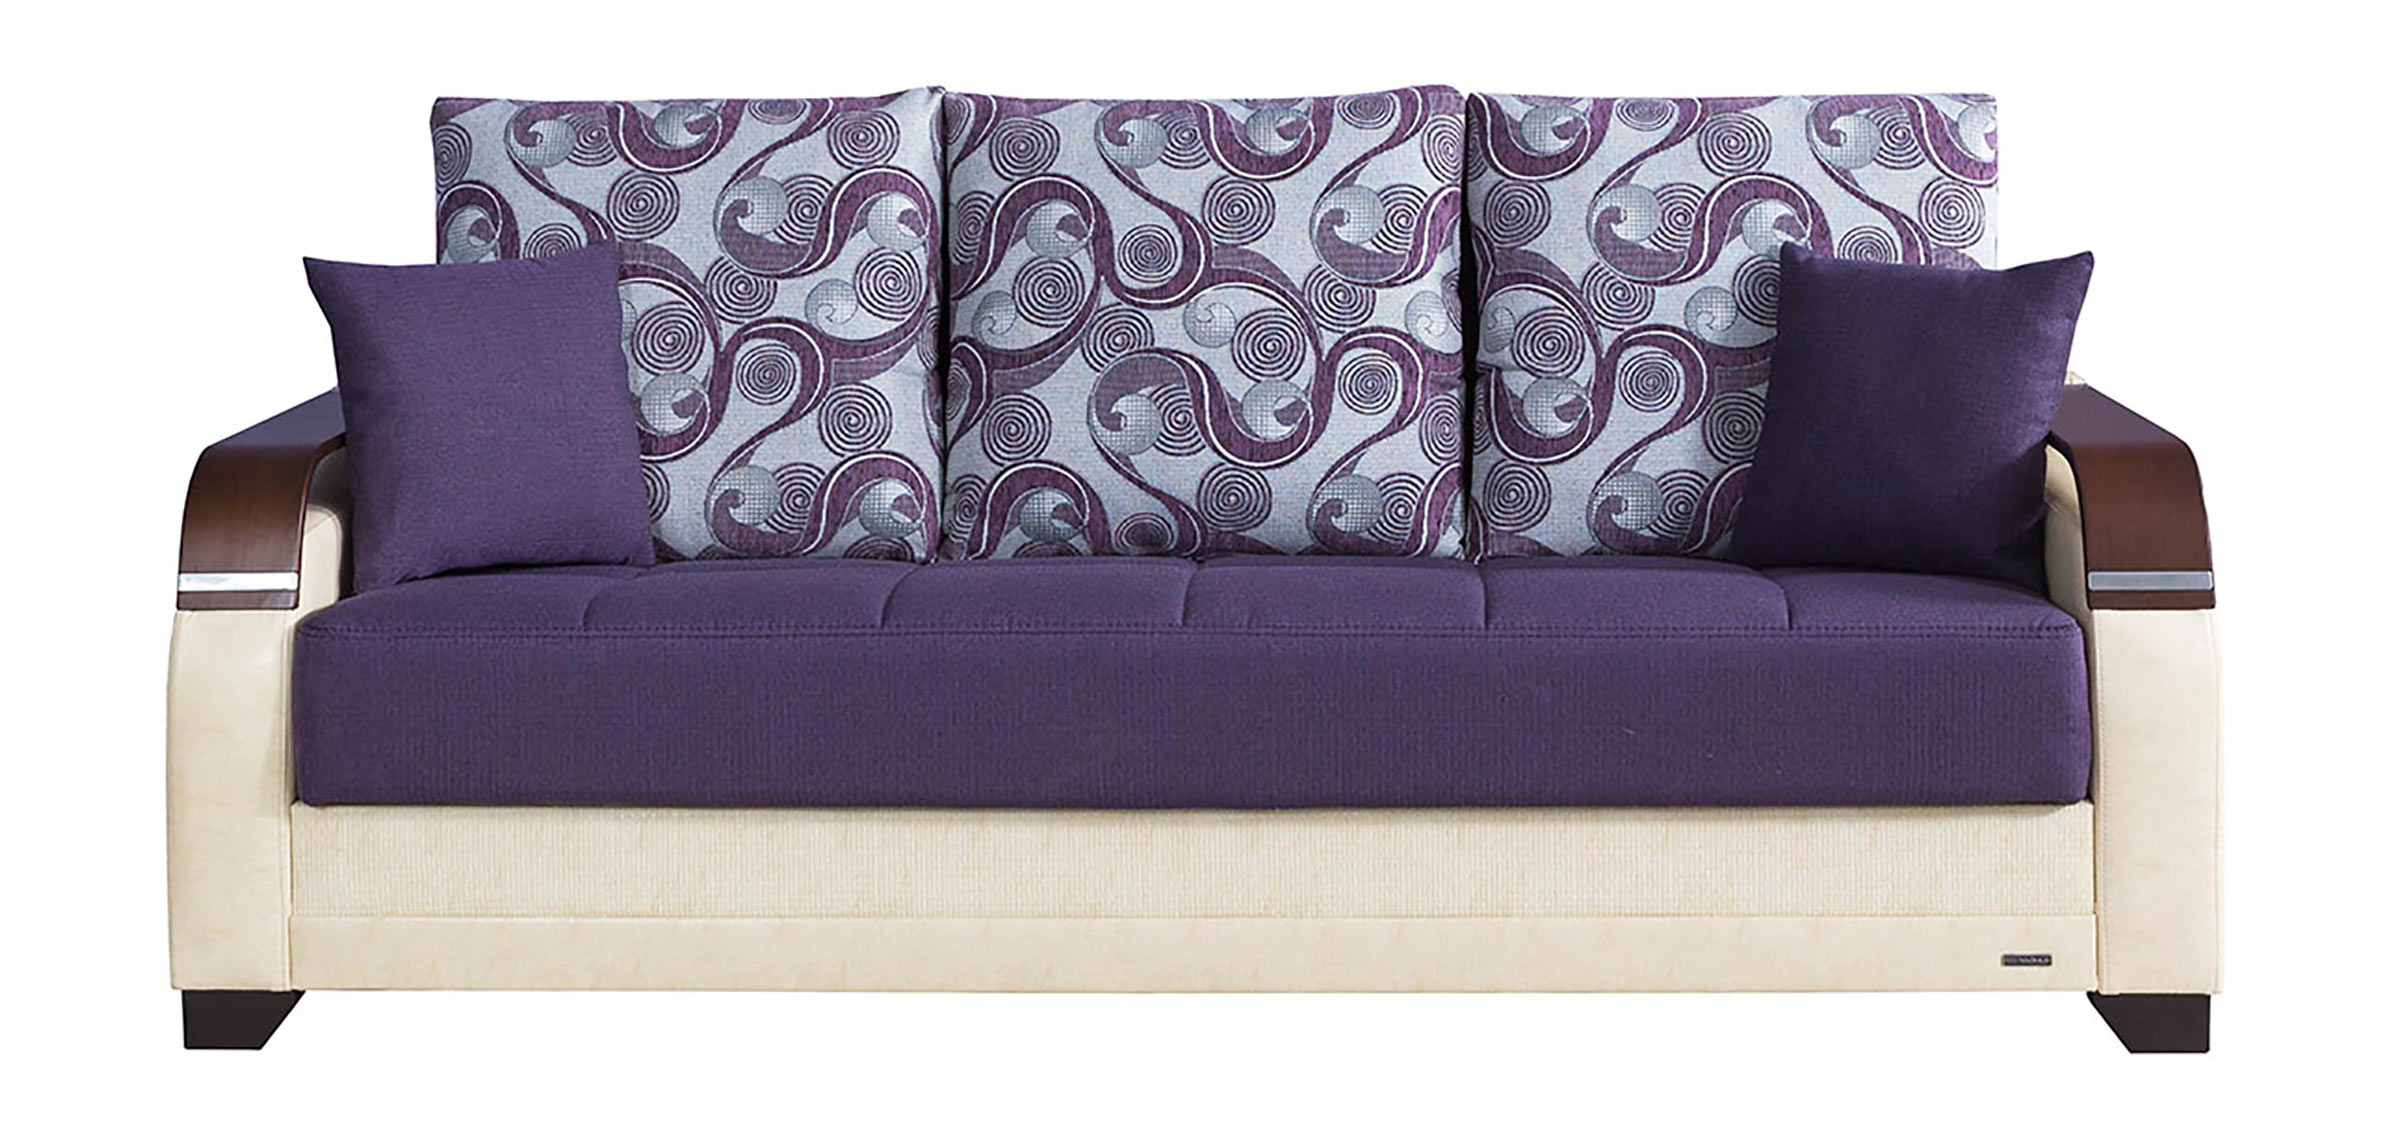 La reina moon dark purple convertible sofa bed by casamode for Purple sofa